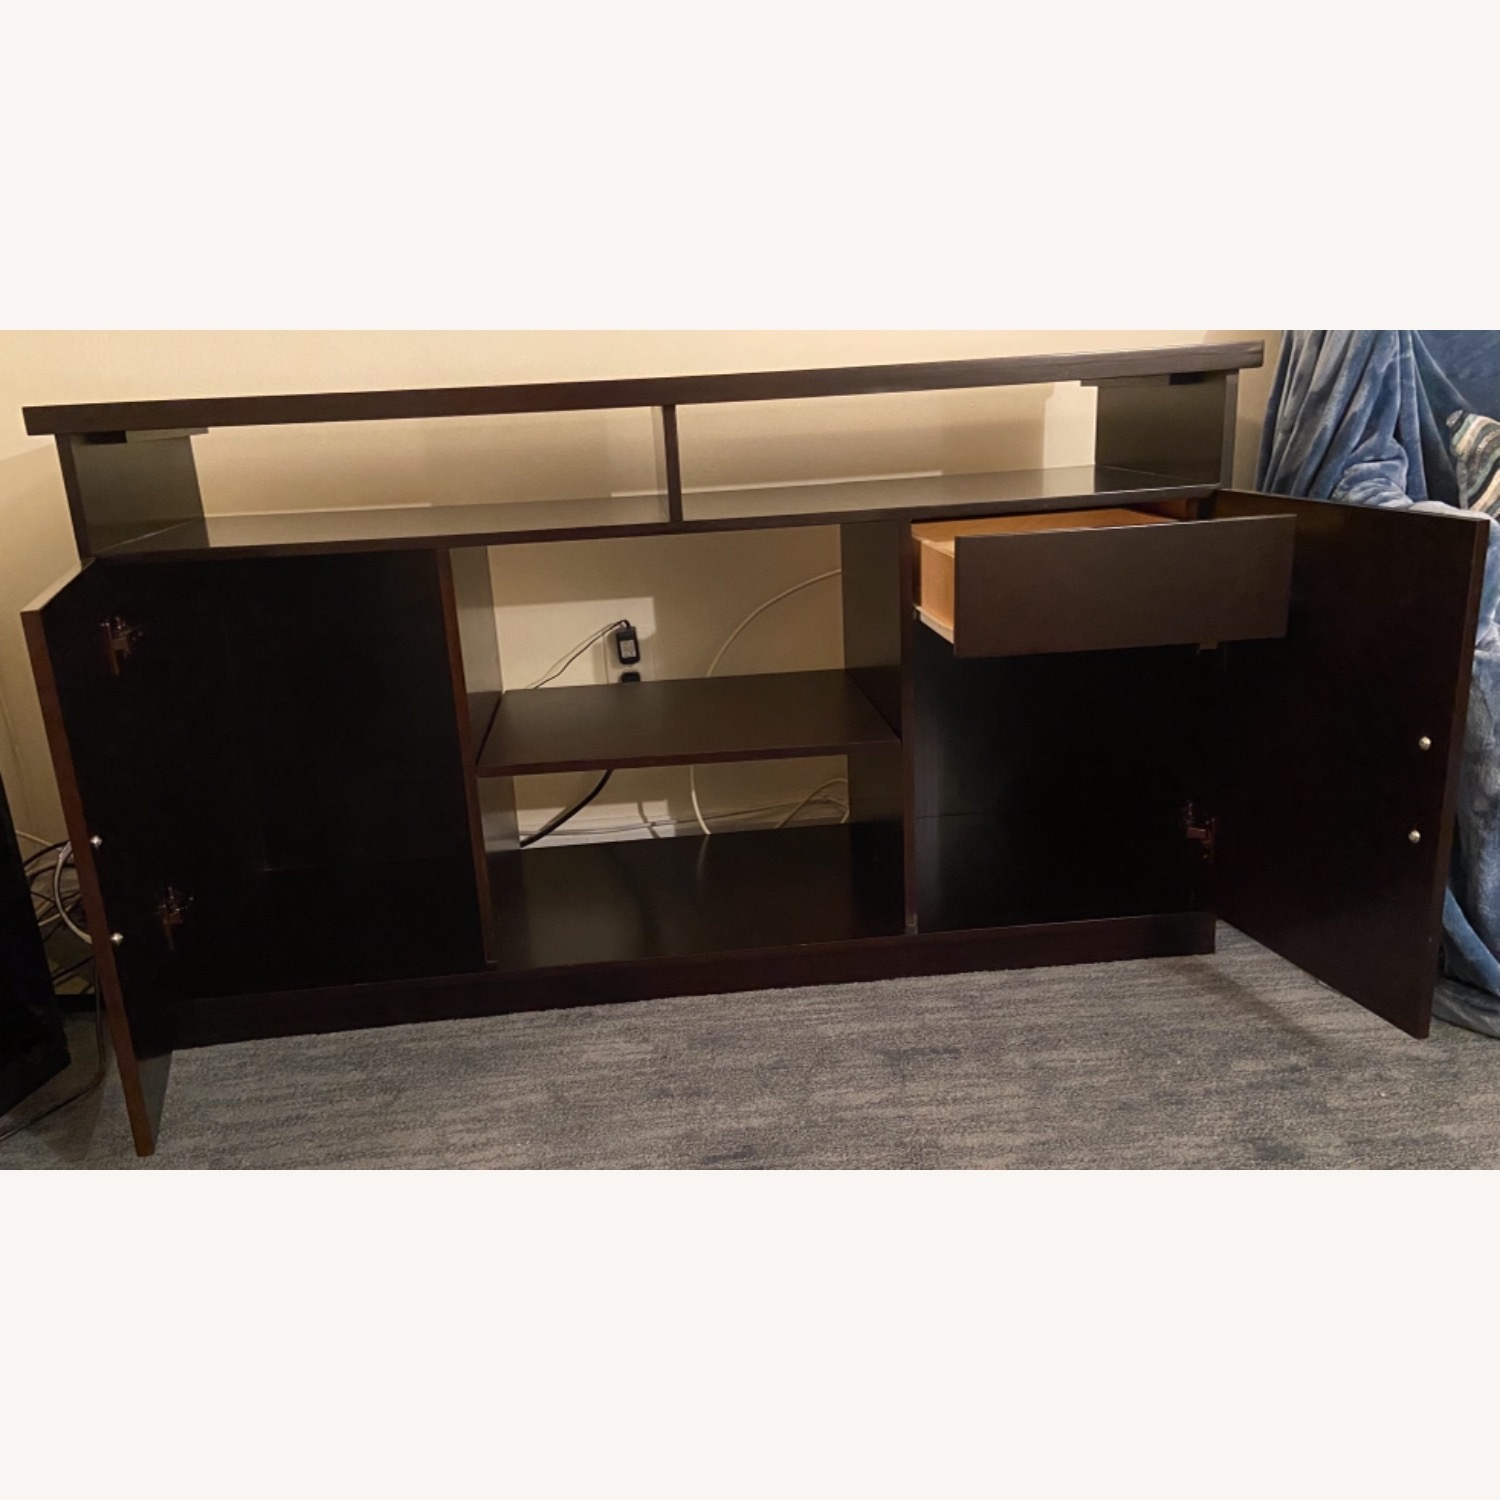 Gothic Cabinet Craft TV Stand w/ 2 Doors - image-2